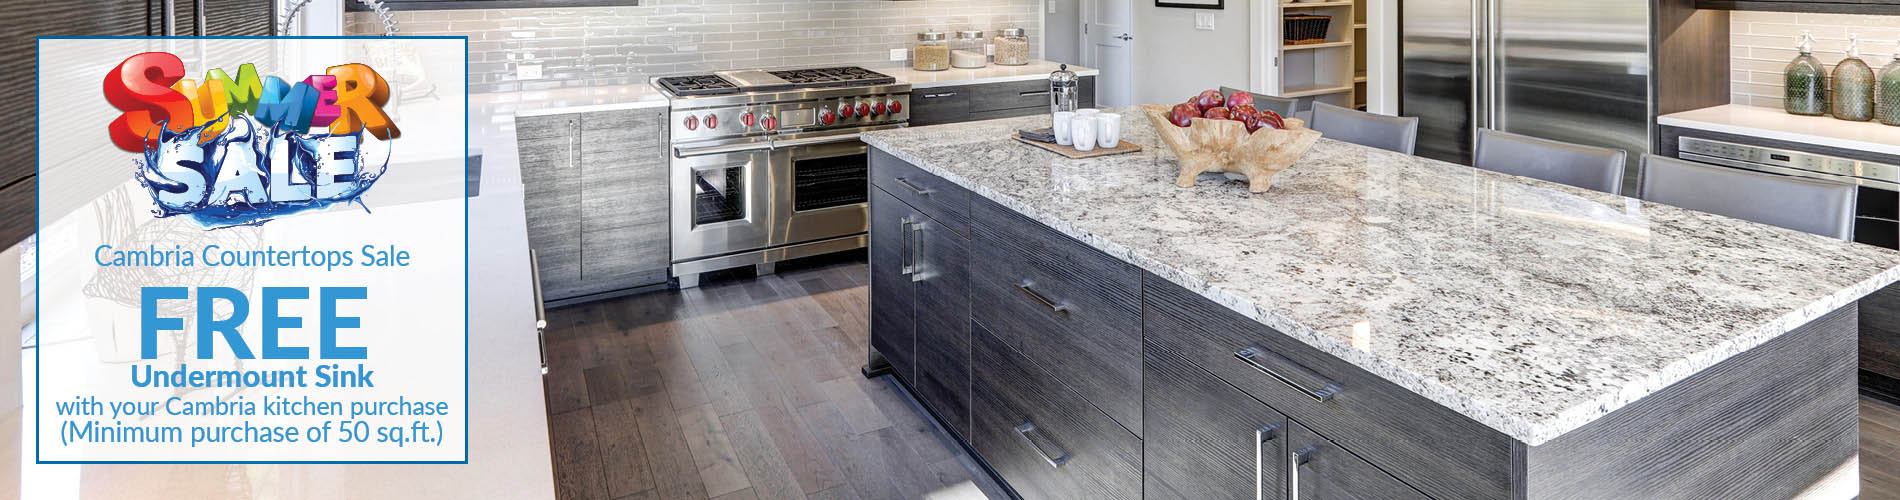 Free Undermount Sink With Your Cambria Kitchen Countertop Purchase During  The Summer Sale At Erskine Interiors ...